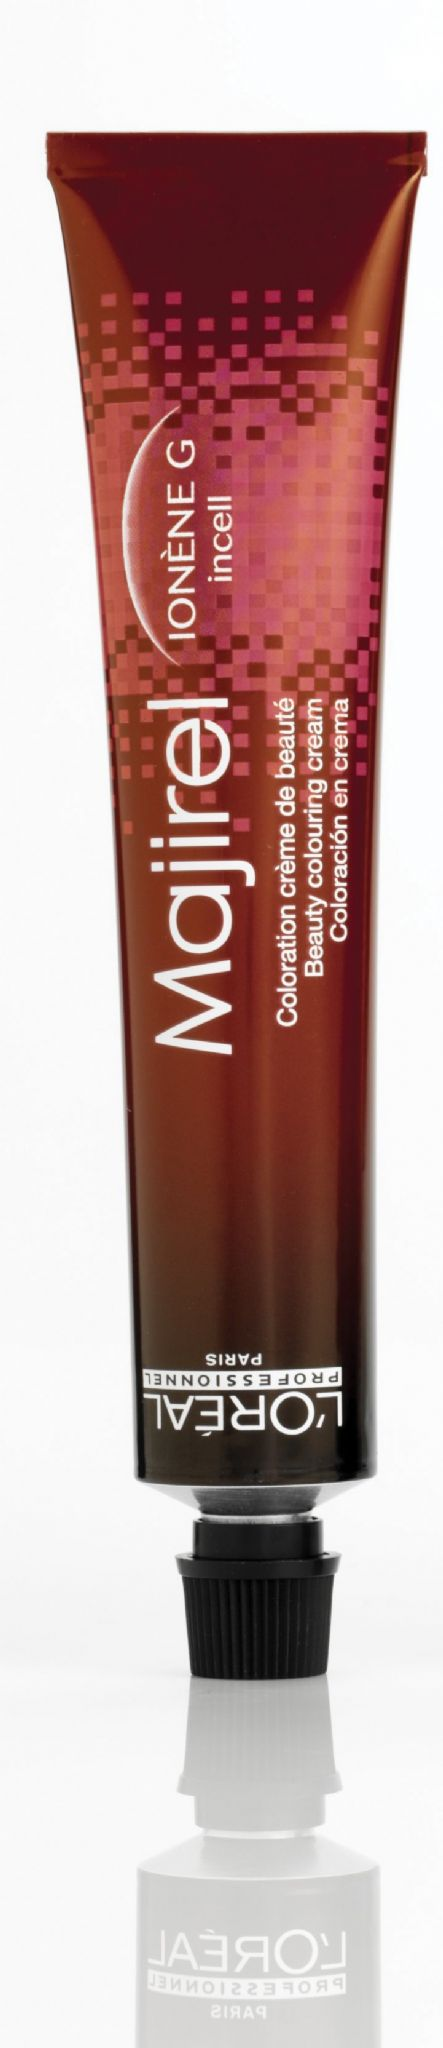 L'oreal Majirel Mocha 50ml